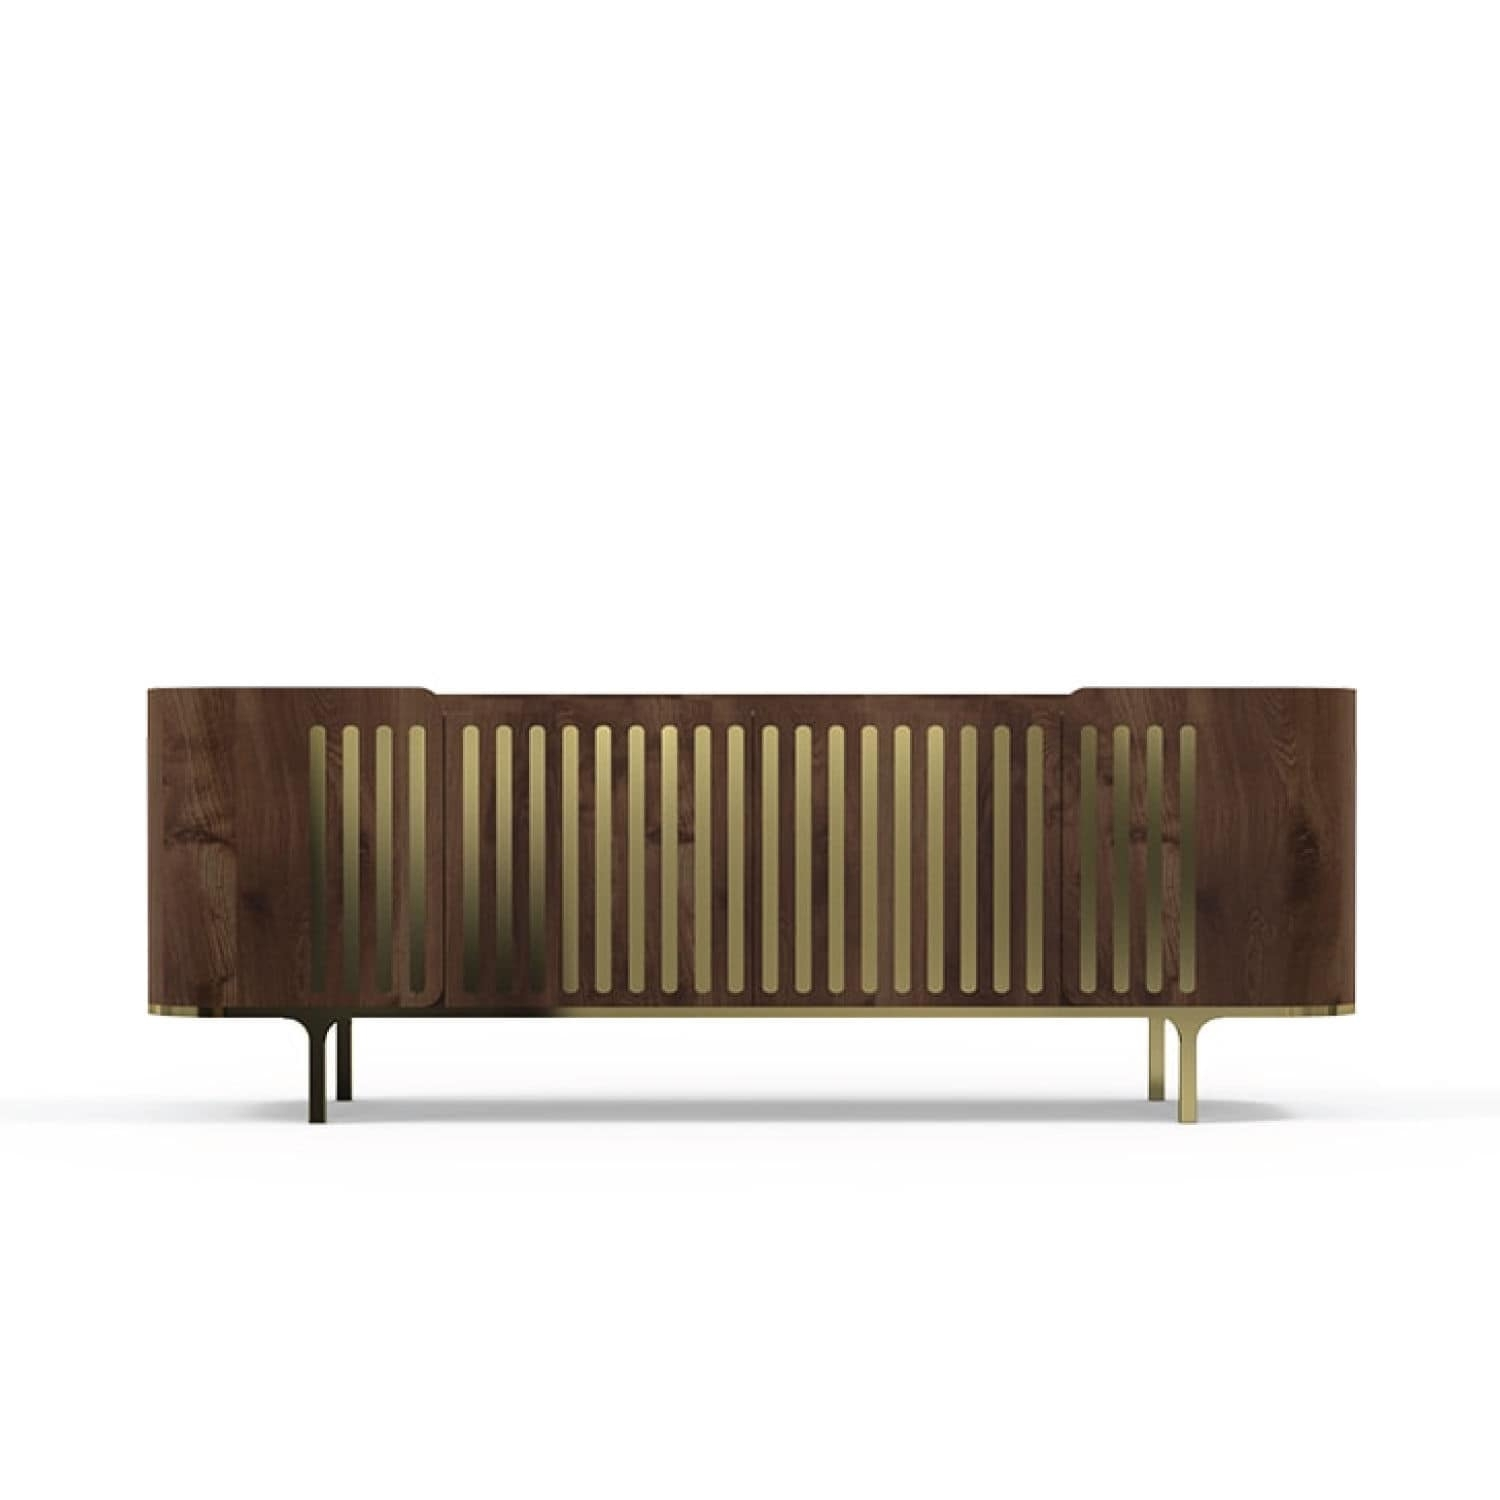 Contemporary Sideboard / Oak / Walnut / Polished Brass - Anthony intended for Aged Brass Sideboards (Image 5 of 30)